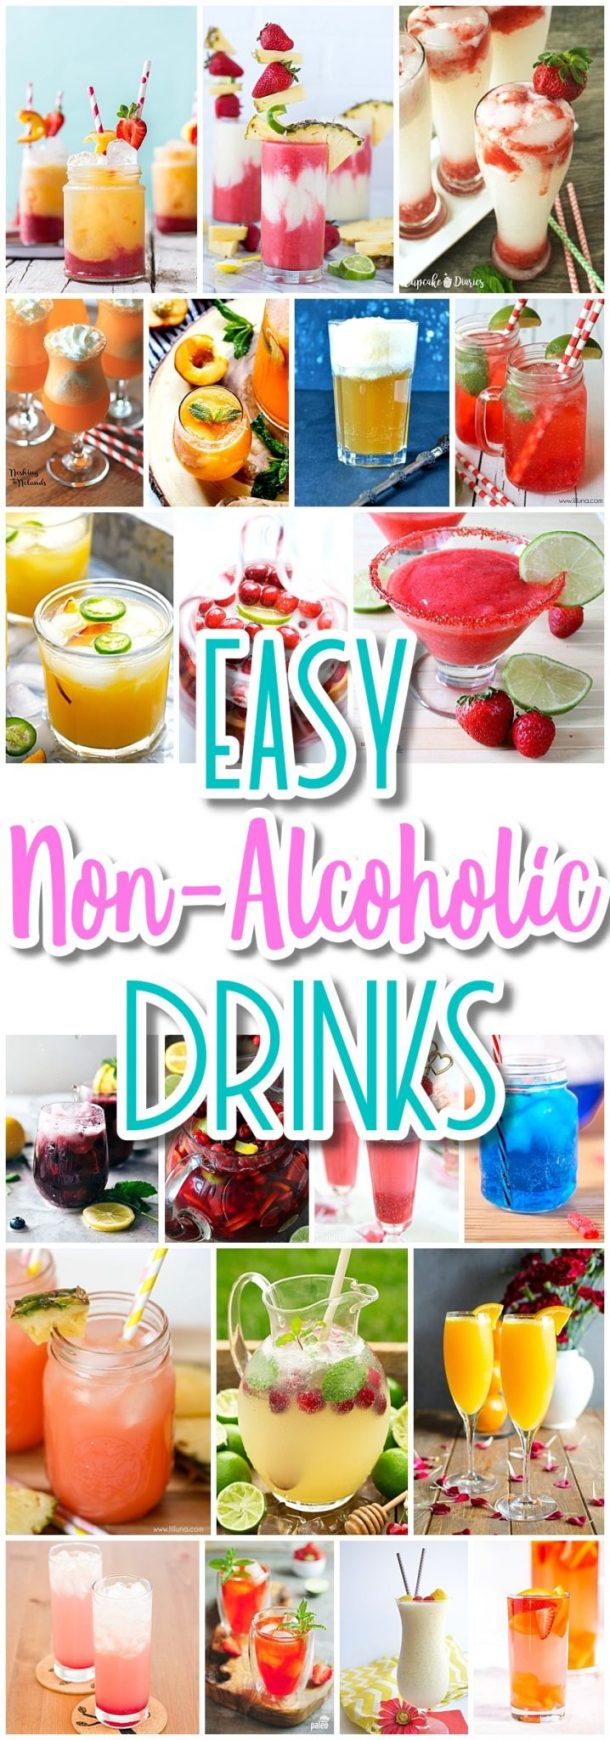 The best easy non alcoholic drinks recipes creative for Vodka mixed drink recipes simple